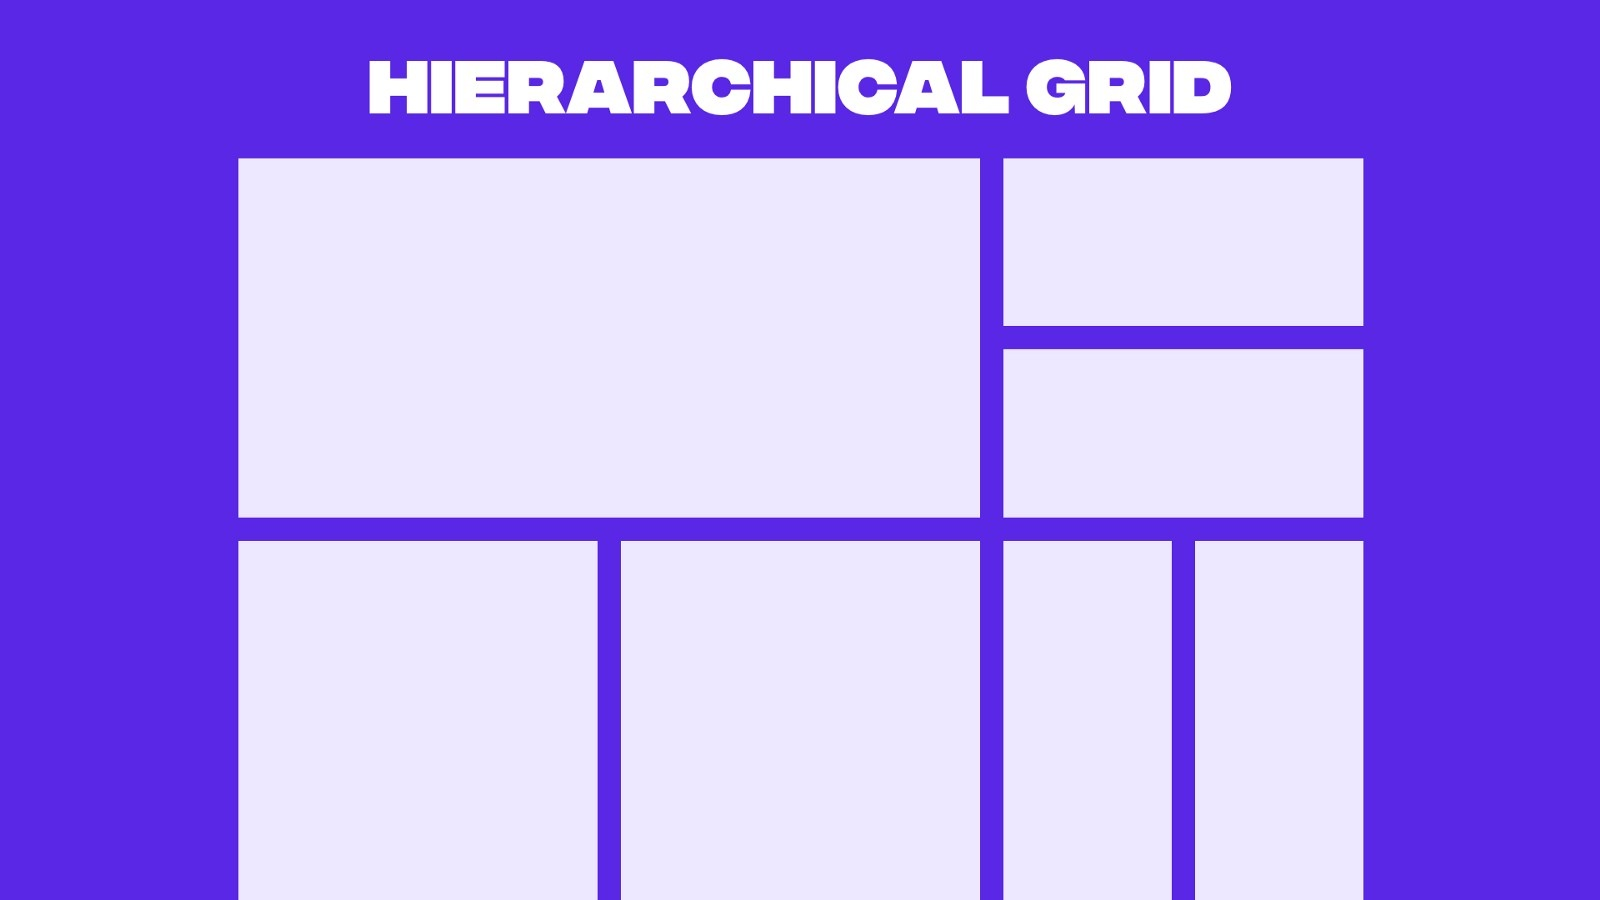 Example of a hierarchical grid